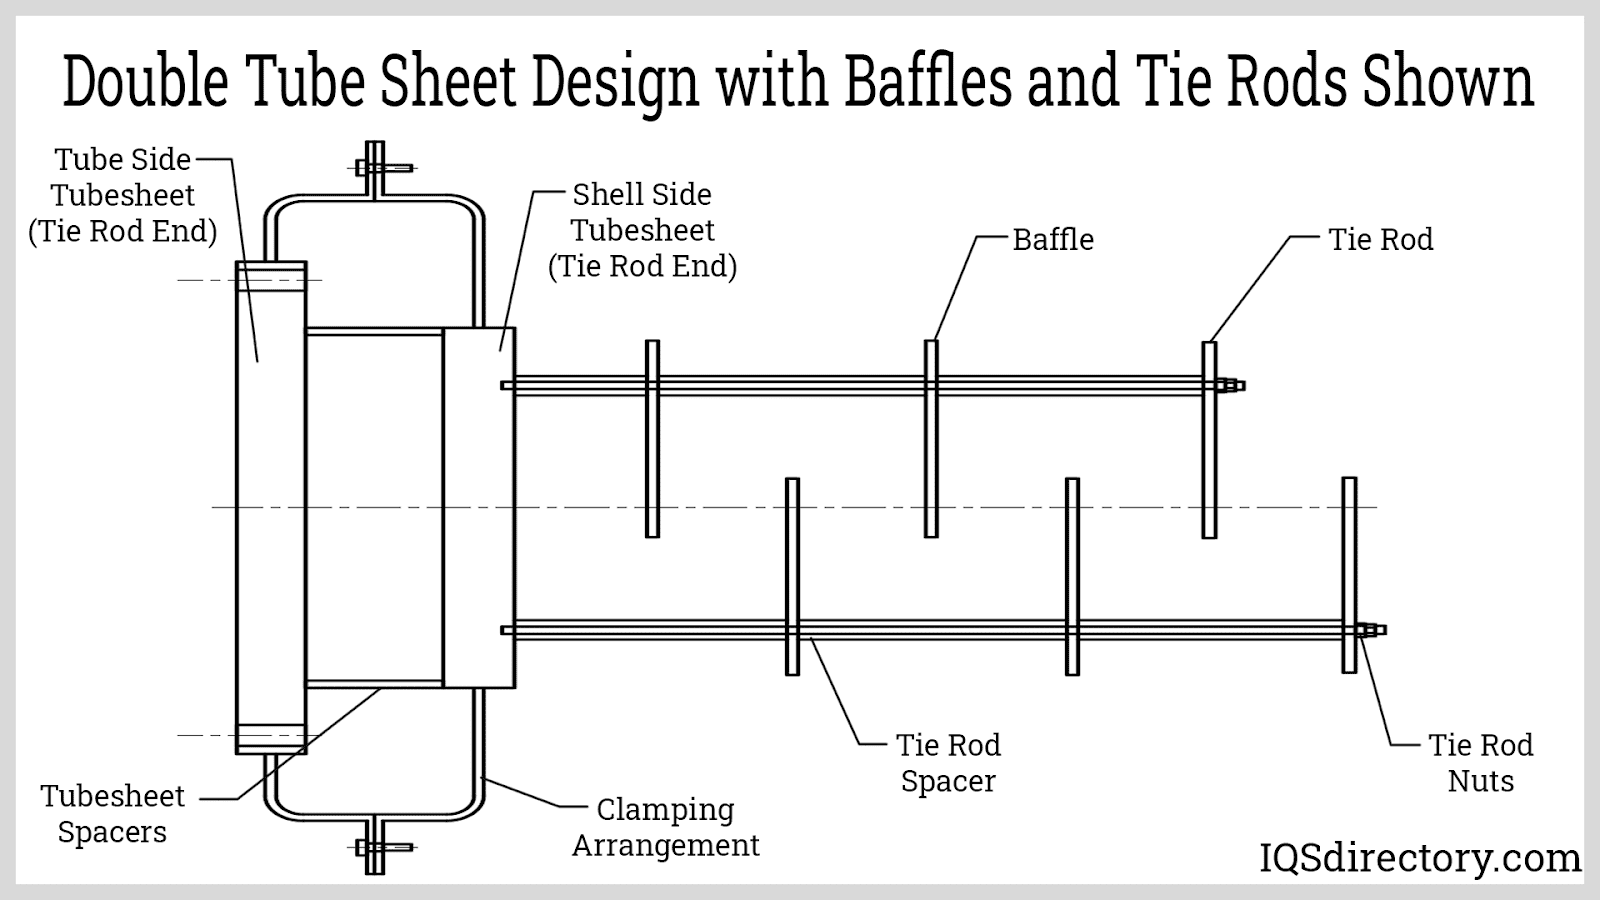 Double Tube Sheet Design with Baffles and Tie Rods Shown